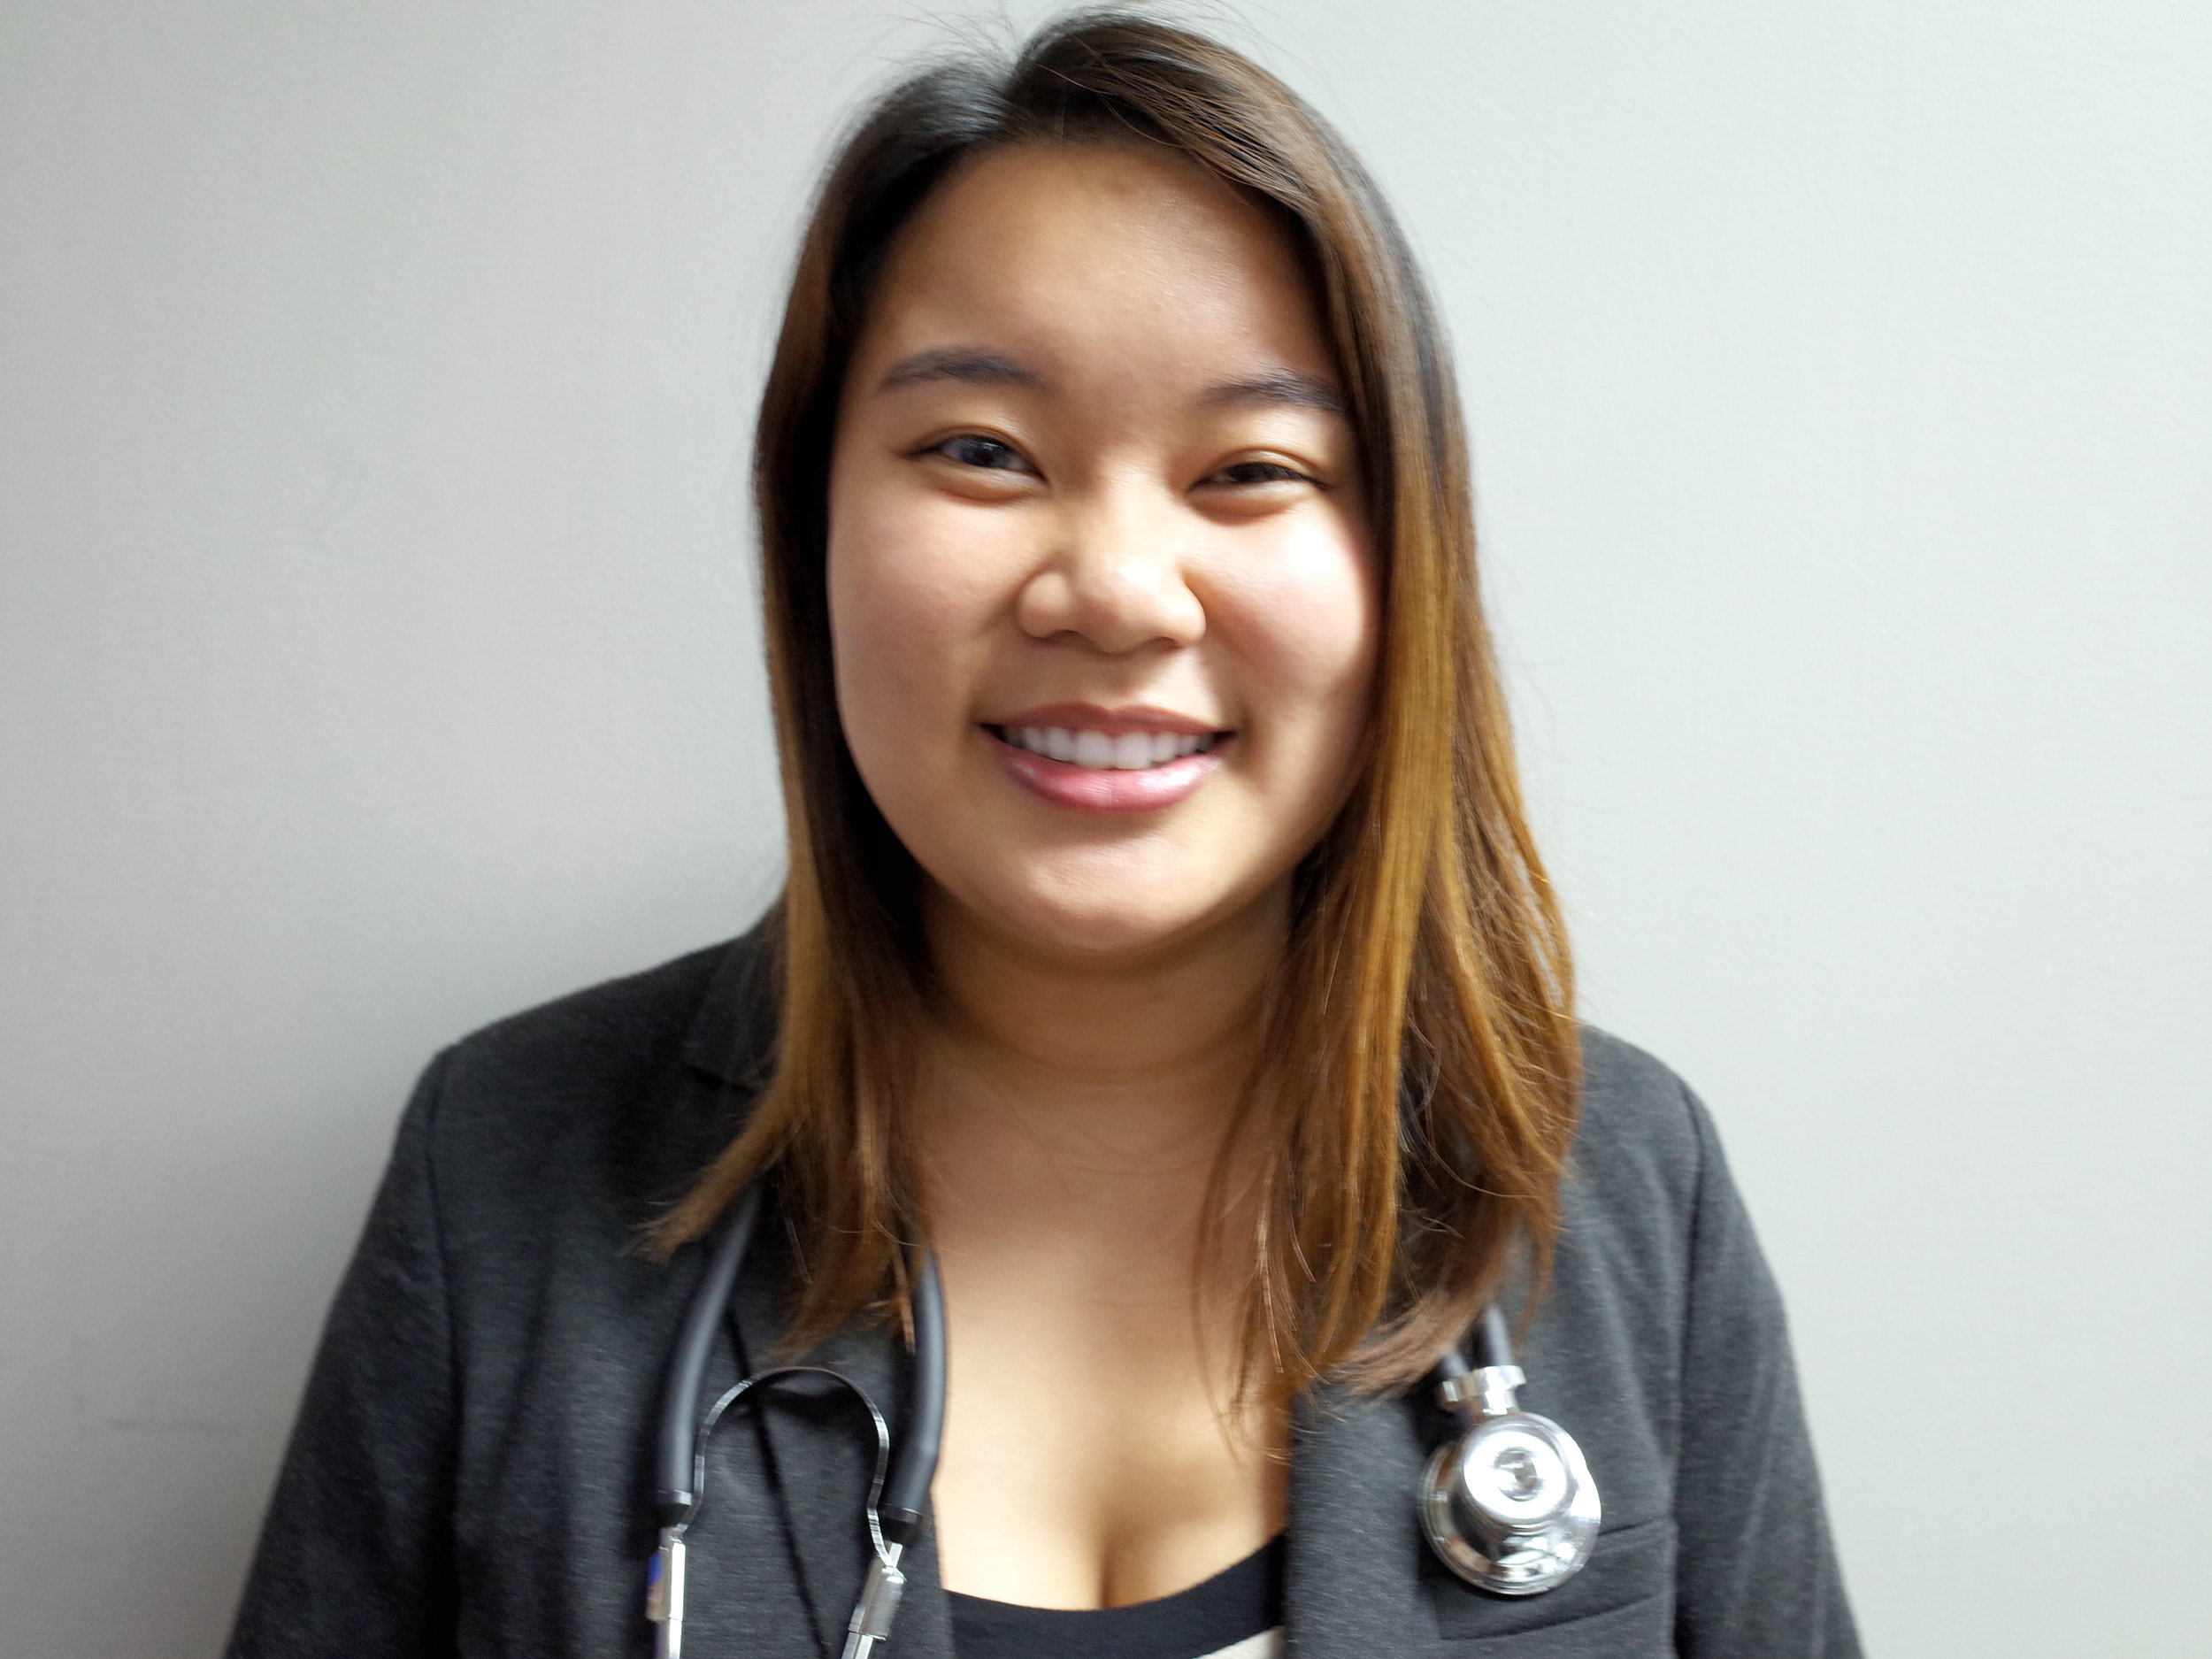 Maria Nguyen   Major: Neurobiology, Physiology, and Behavior Career Goal: Dermatologist